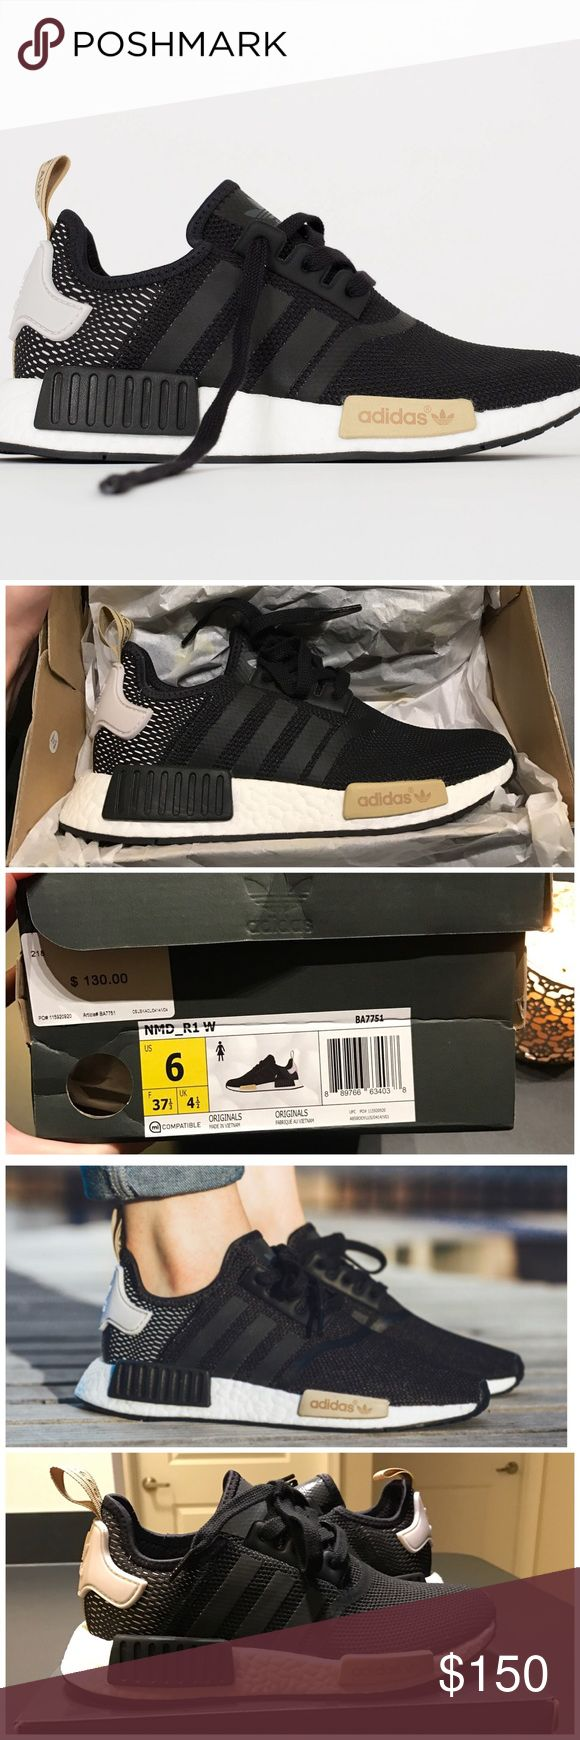 Brand new adidas NMD size 5.5y in black Boutique | Adidas nmd, Adidas nmd r1  and Nmd